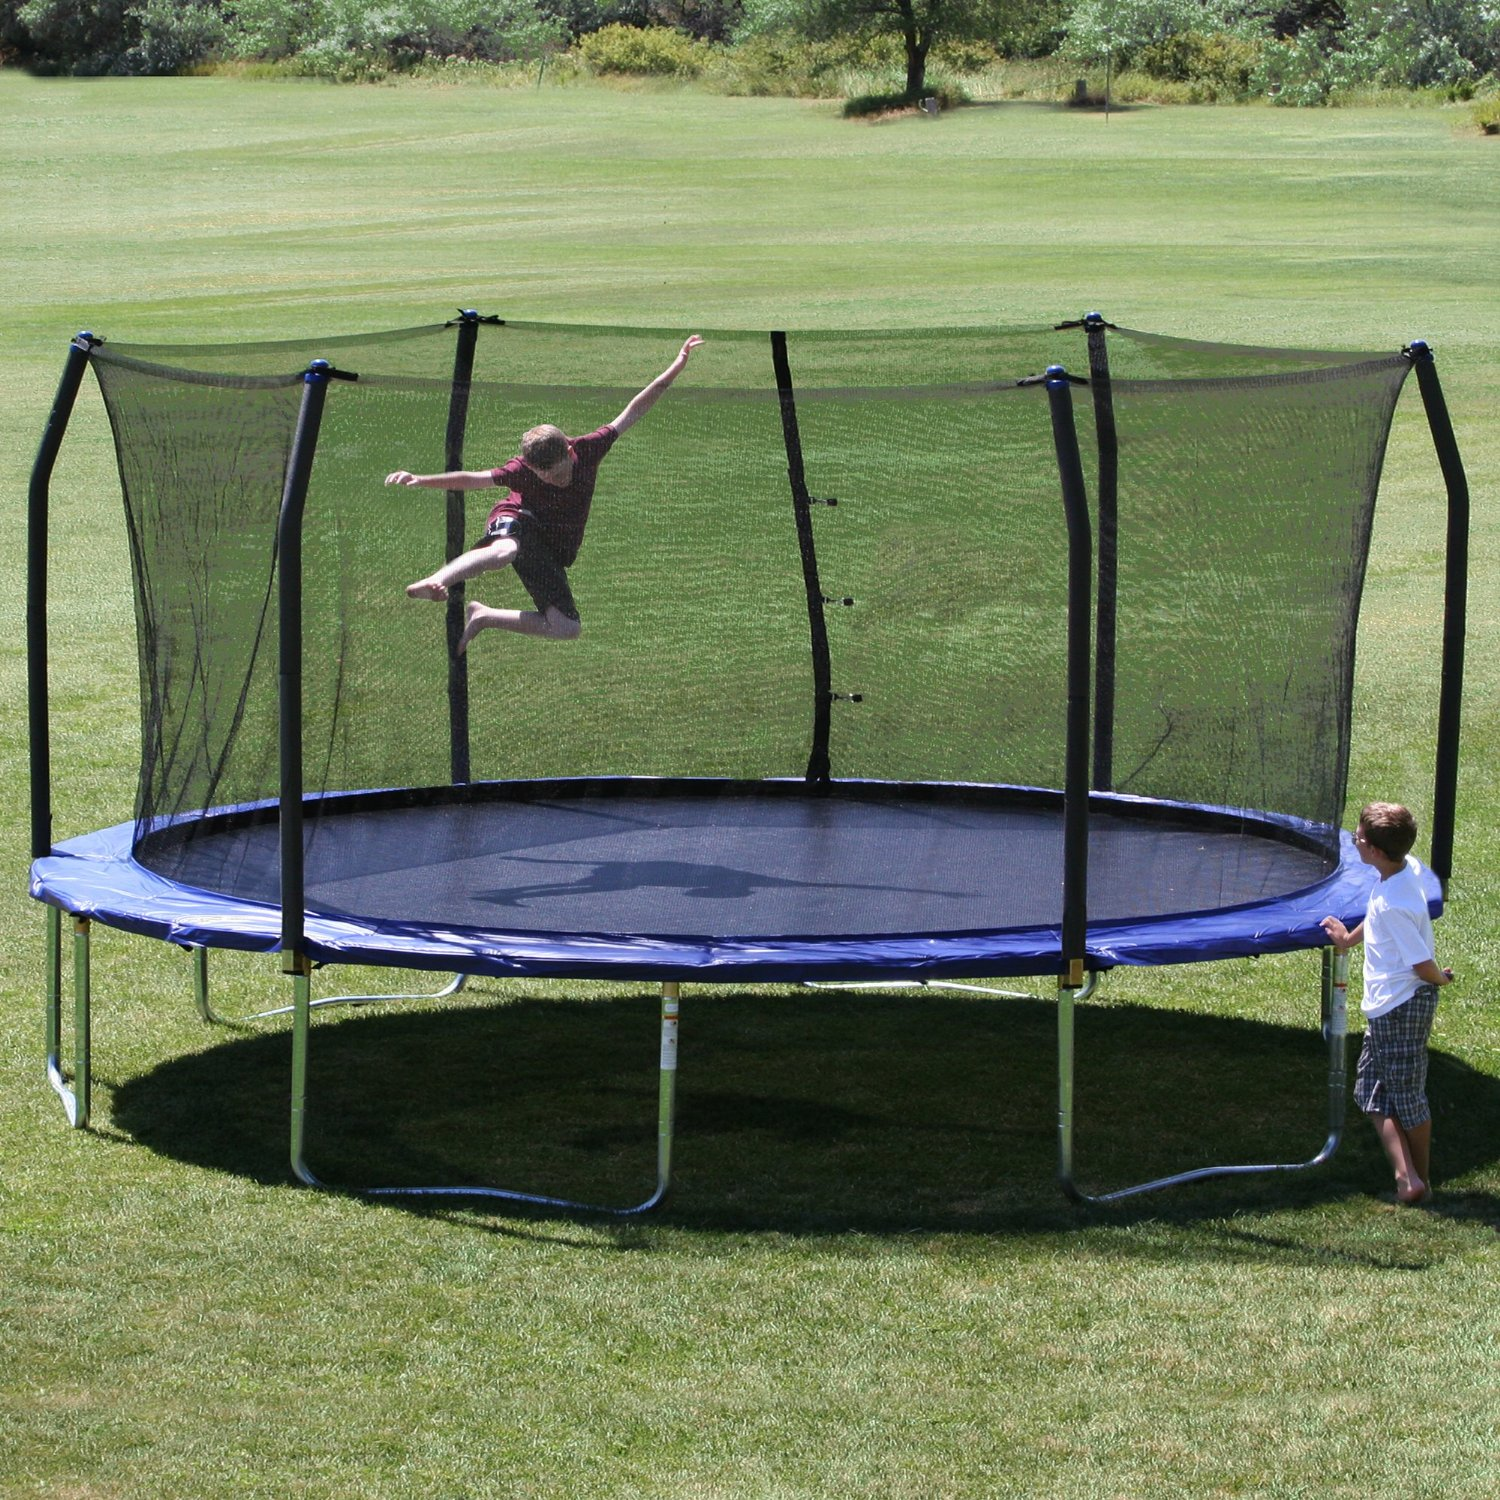 Skywalker Trampolines Green 16 Foot Oval Trampoline With: The Best Trampoline Reviews Of 2015 @ Trampoline101.Com